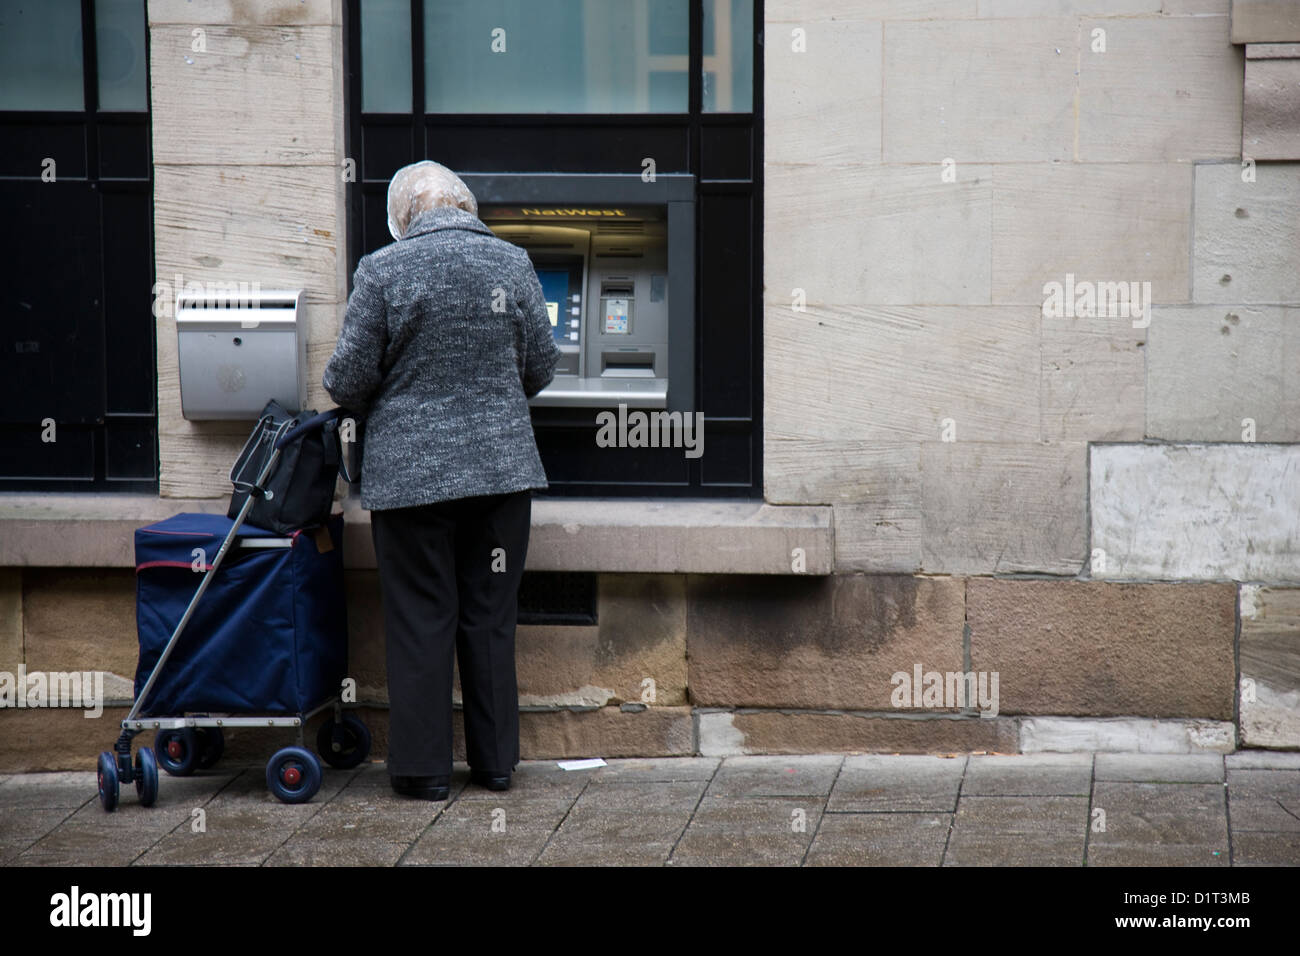 Old lady with shopping trolley using a cashpoint in Chester, UK - Stock Image